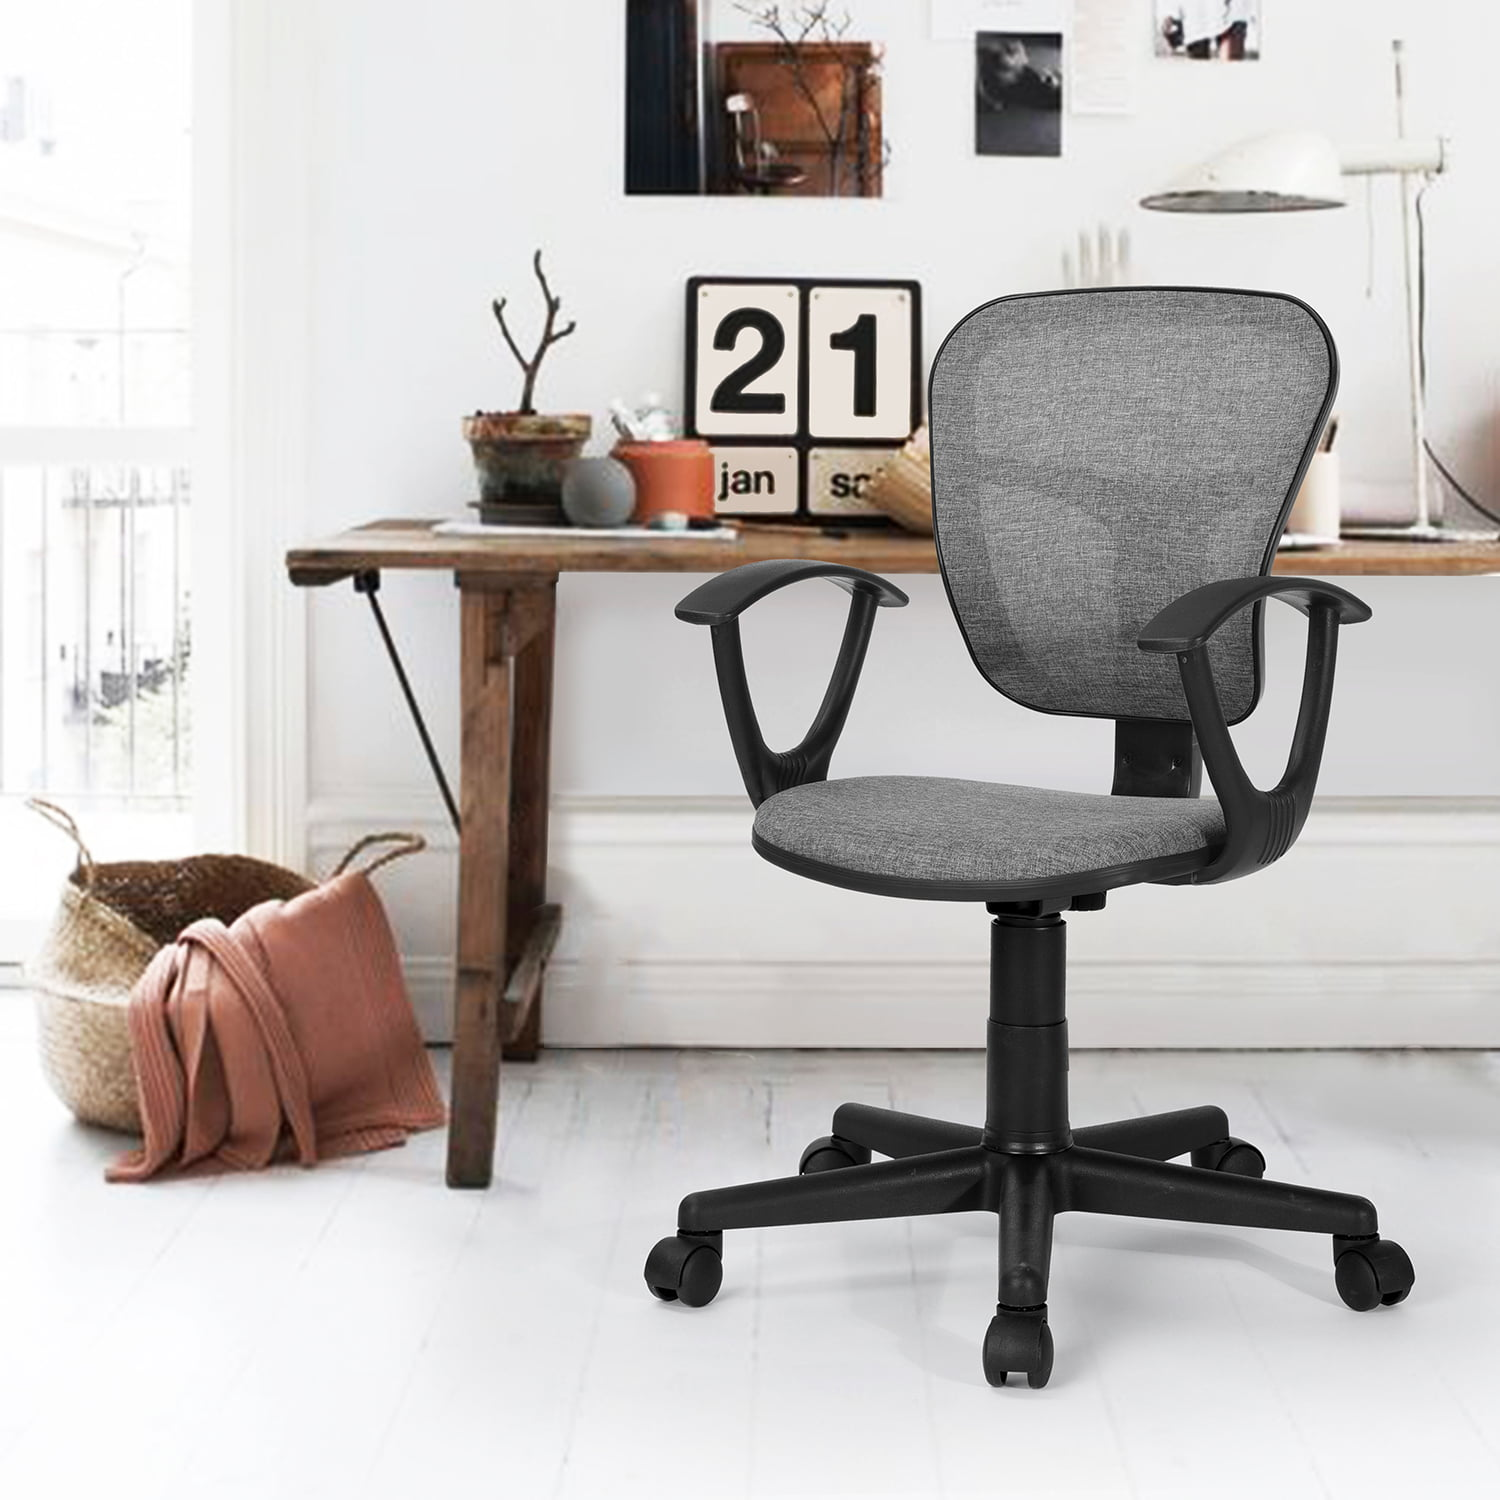 Lowestbest Office Chairs For Home / Office, Desk Chair For